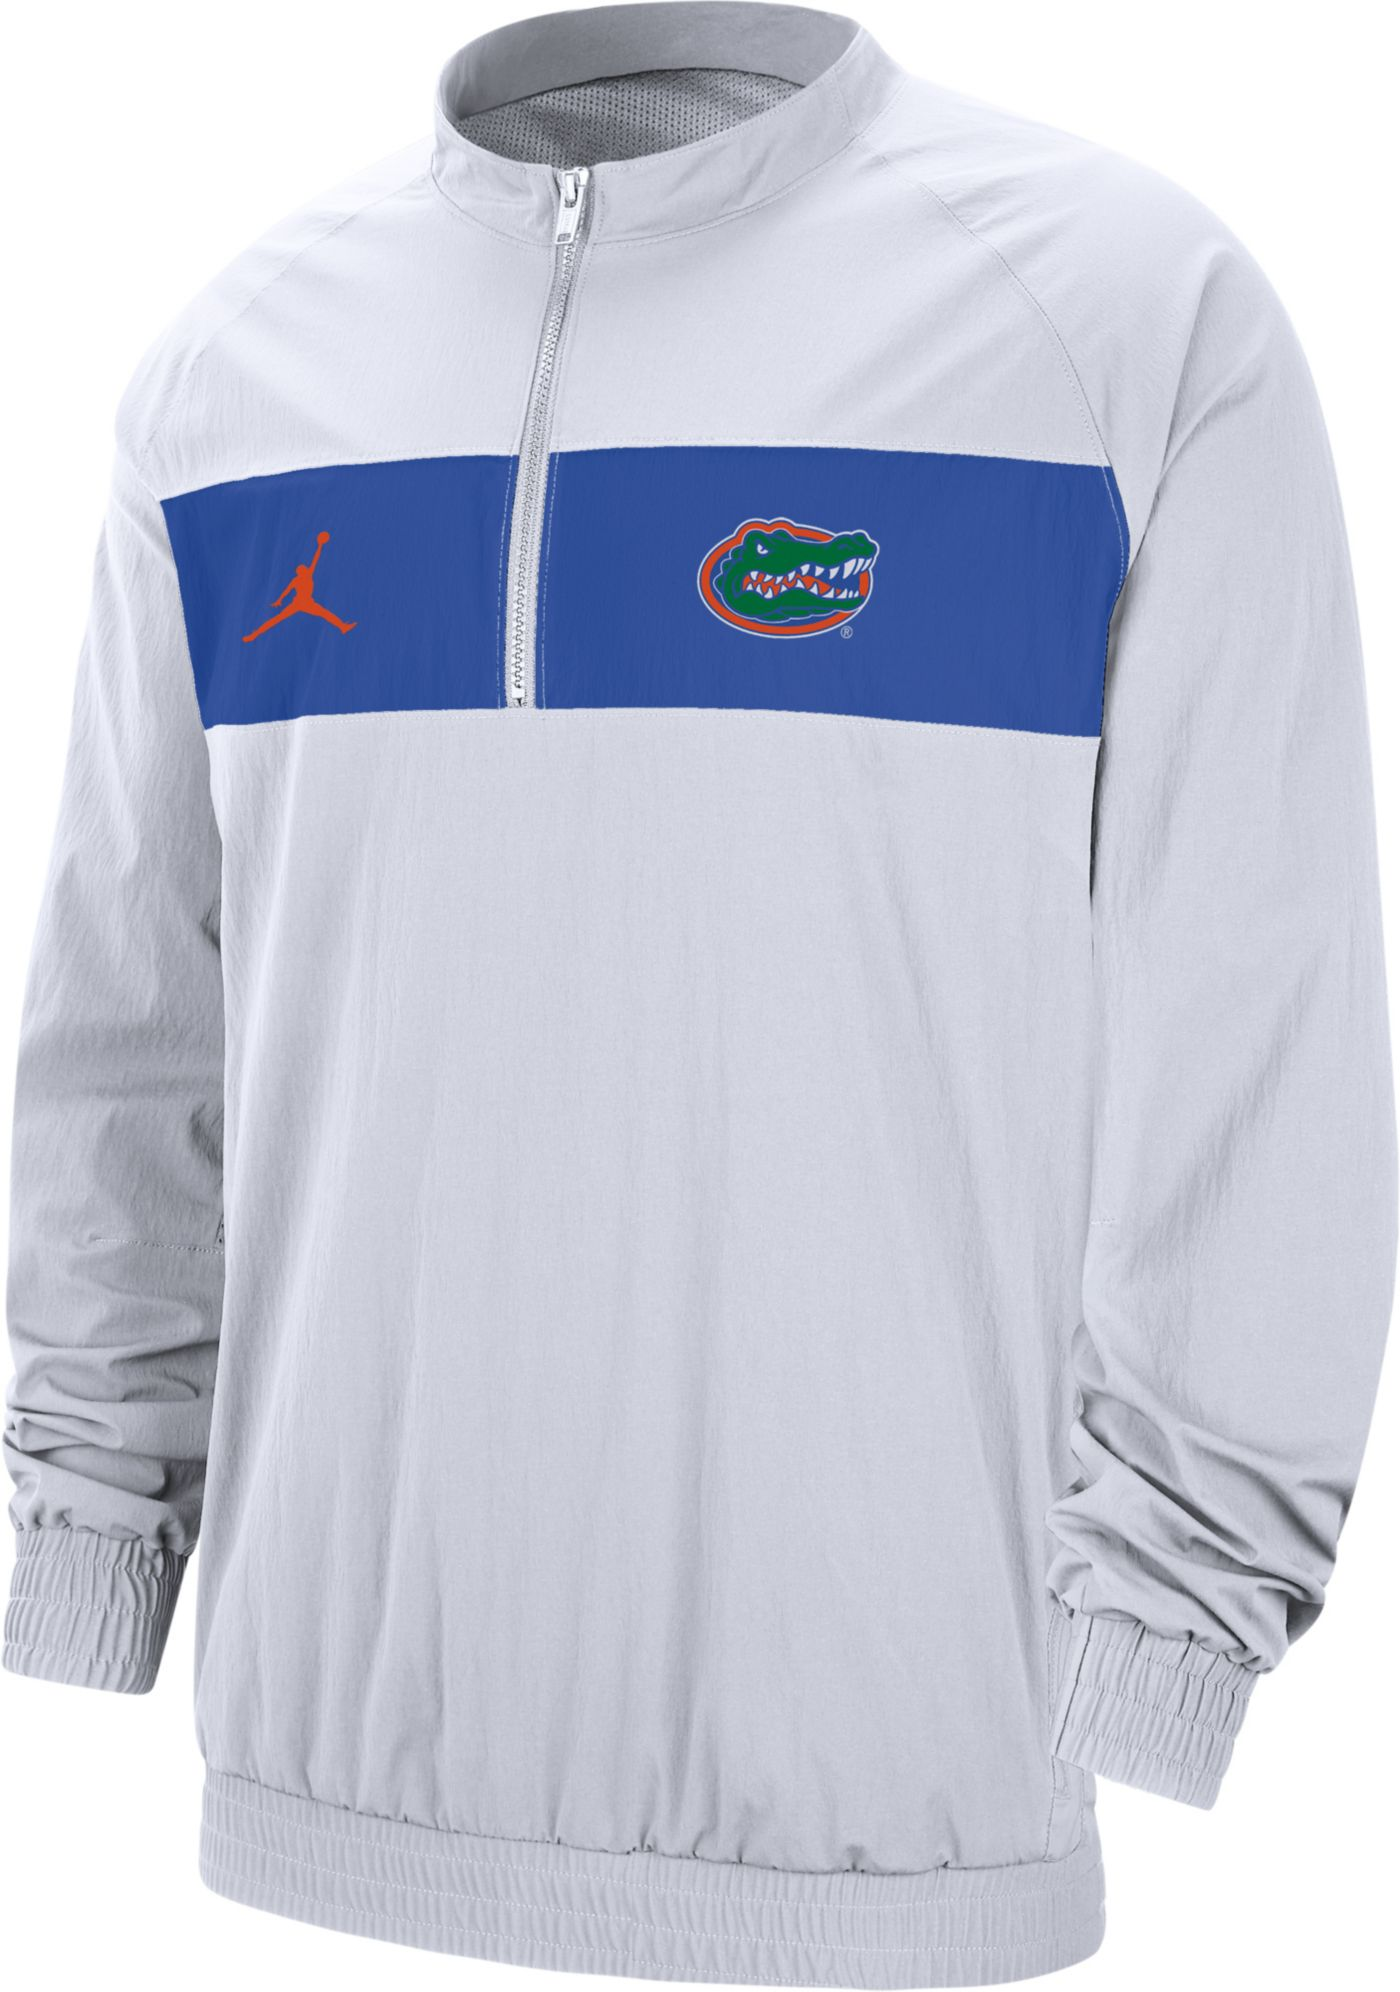 Jordan Men's Florida Gators Lockdown Half-Zip Football White Jacket